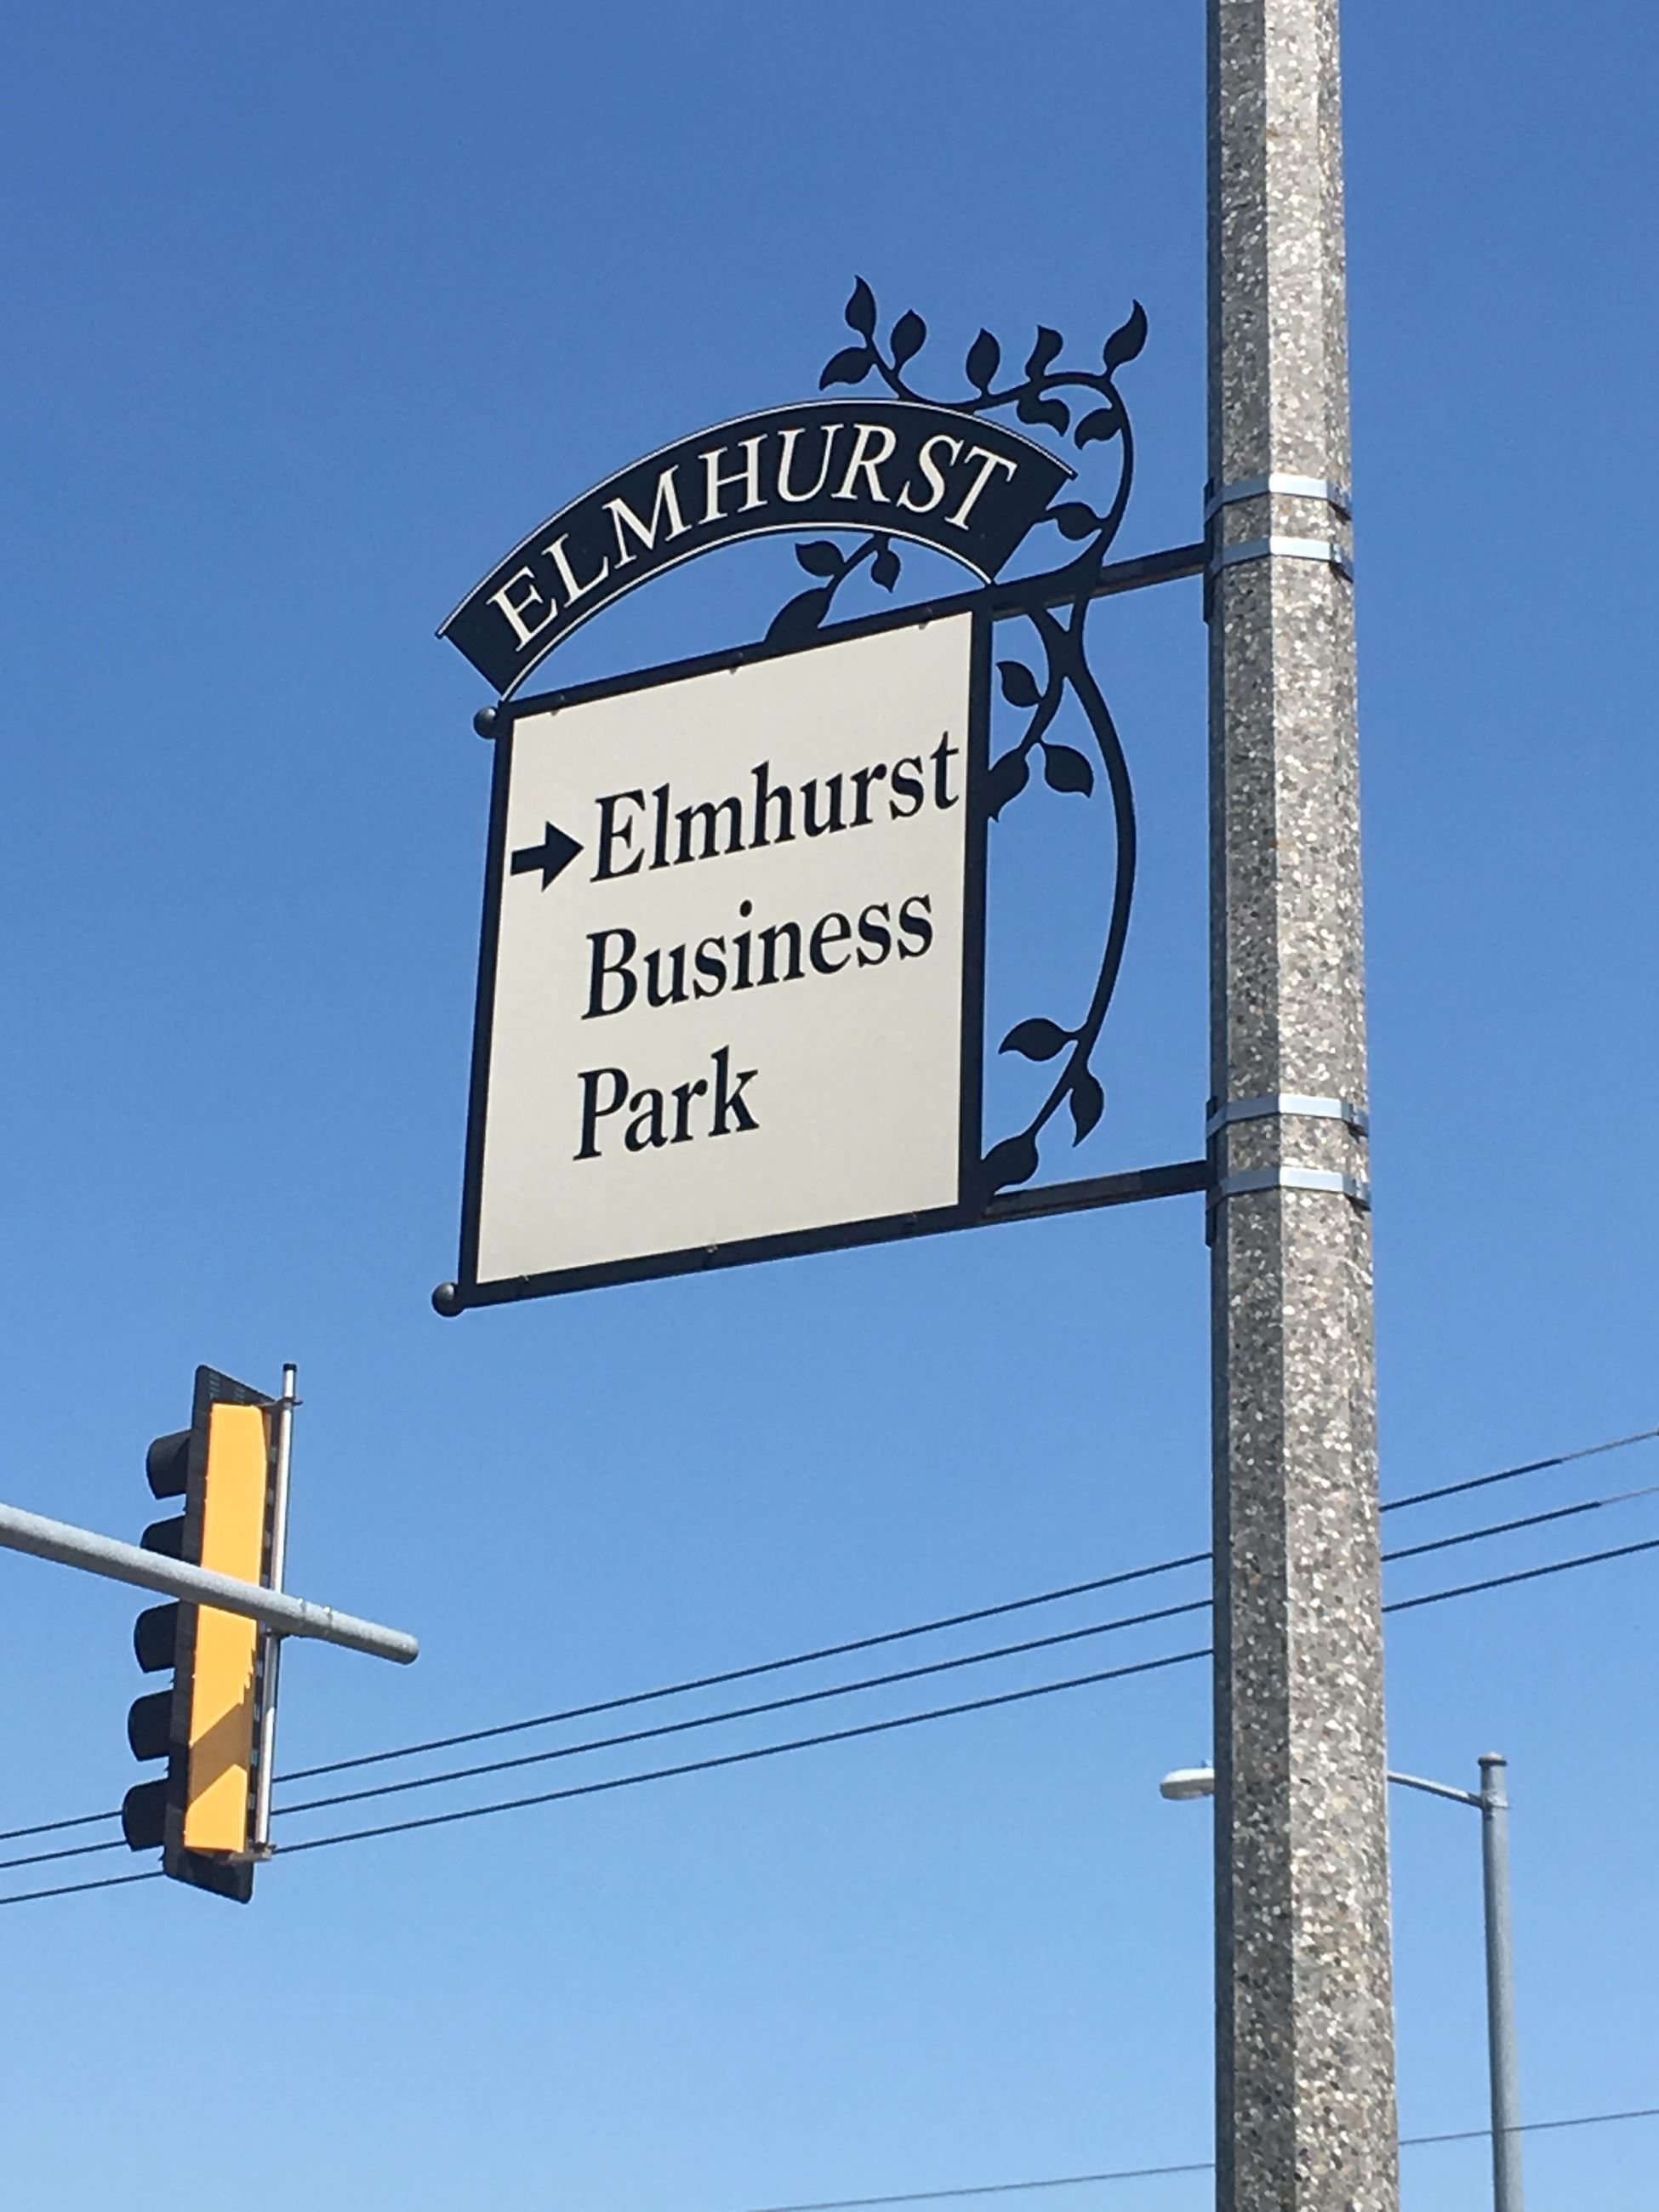 Elmhurst Business Park